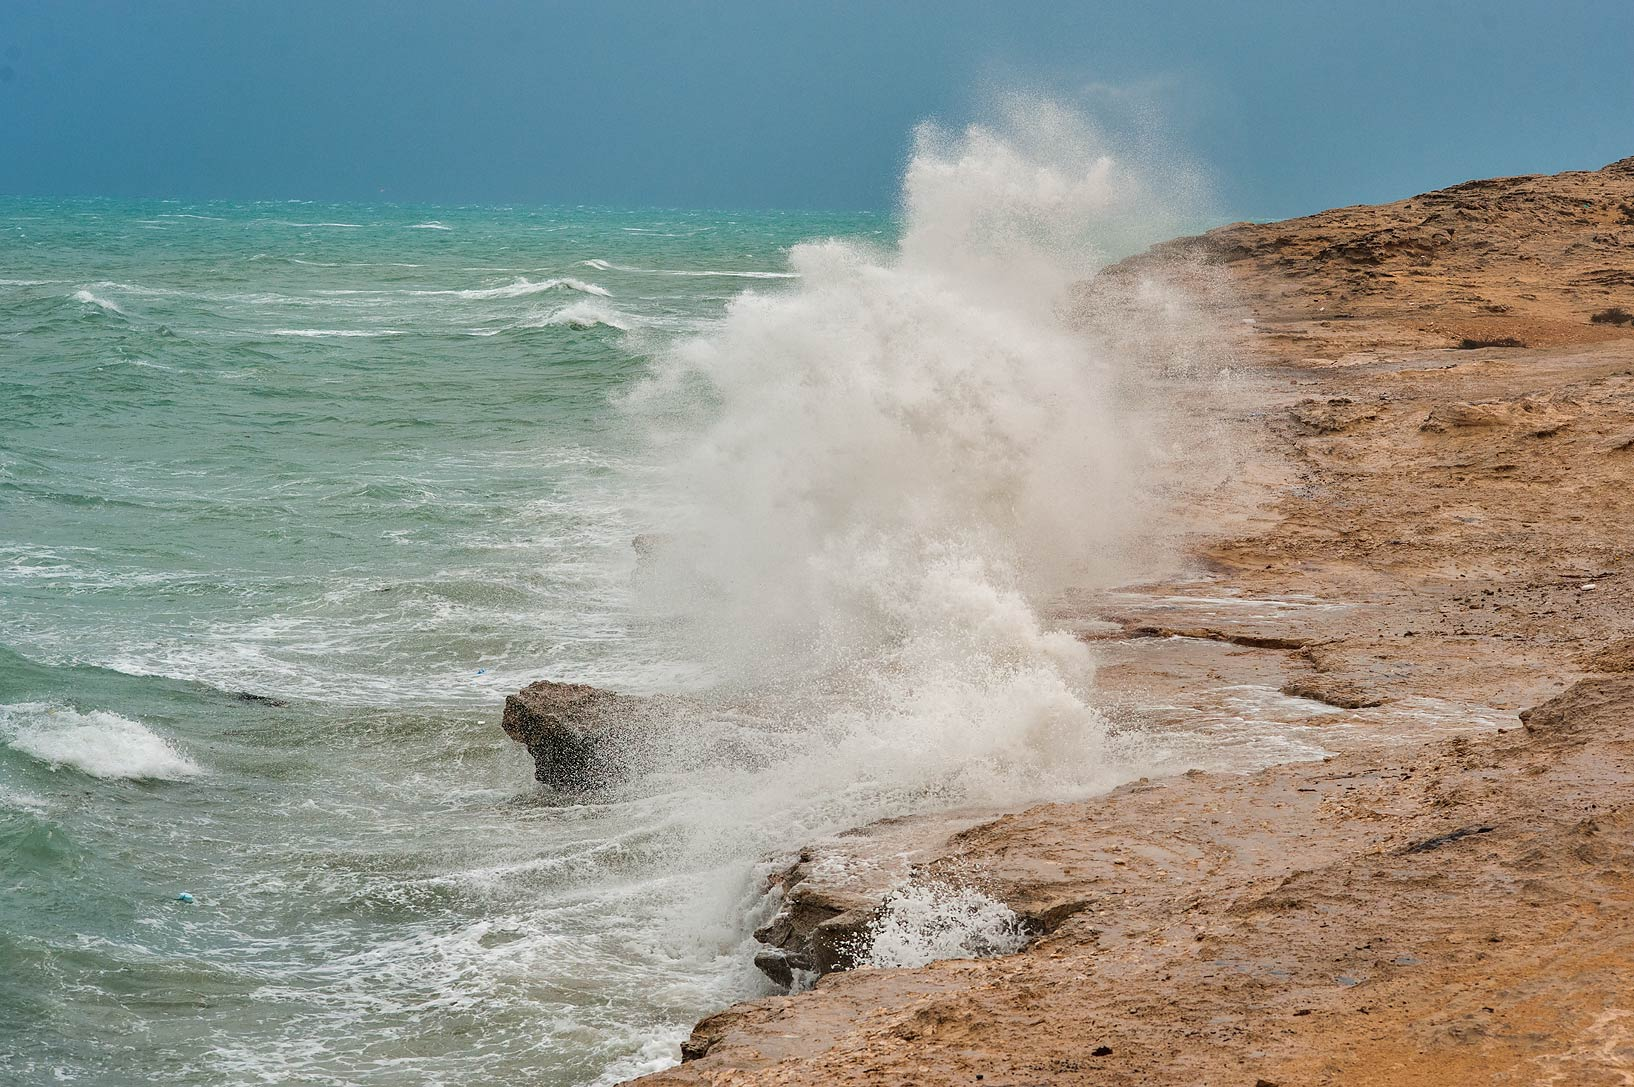 Waves on a beach near Jebel Fuwairit at windy day. Northern Qatar